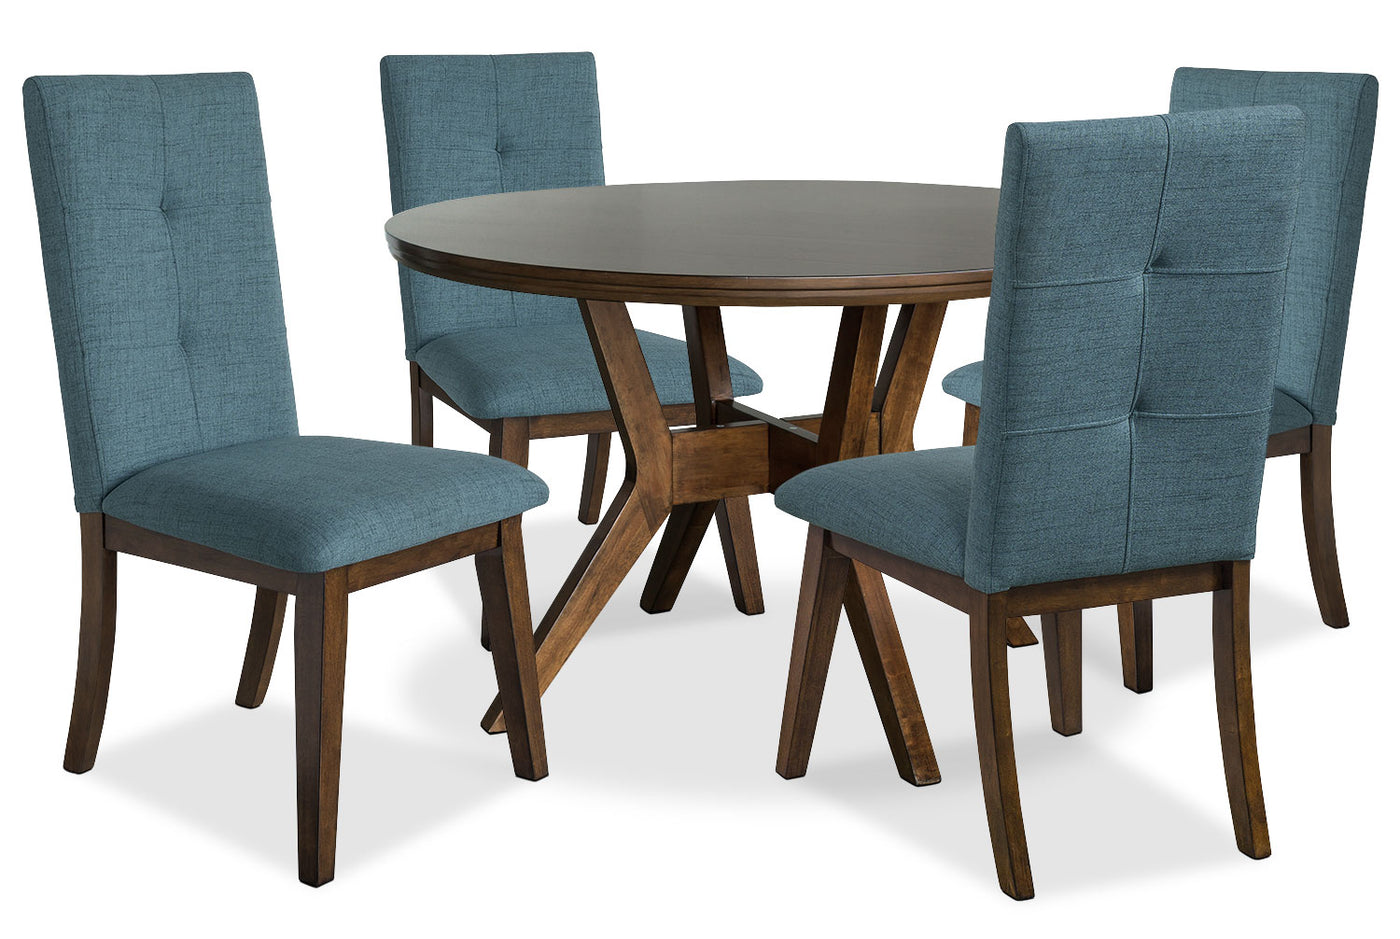 Chelsea 5 Piece Round Dining Table Package With Aqua Chairs The Brick